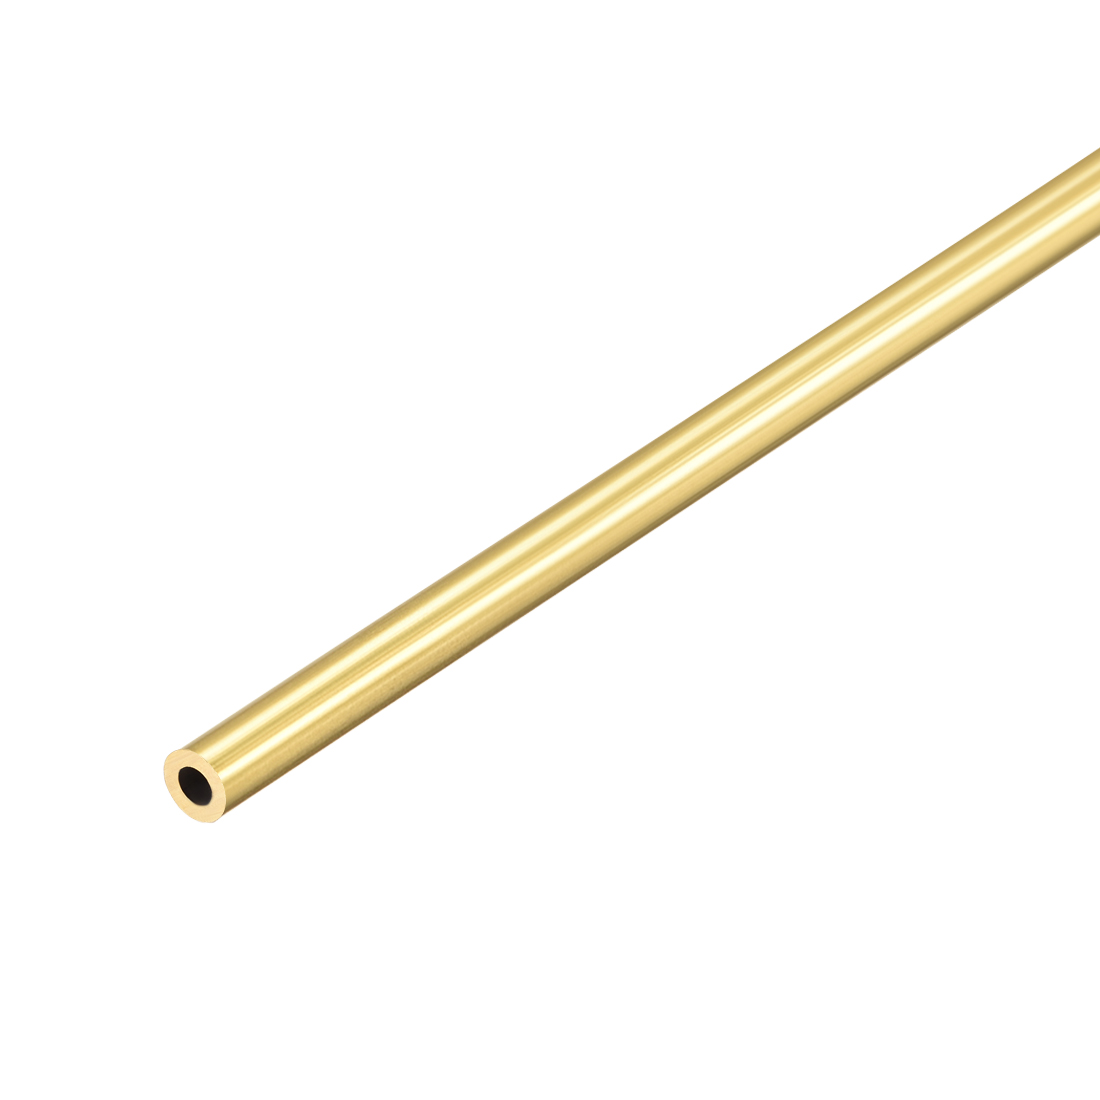 Uxcell Brass Round Tube 300mm Length 1mm Wall Thickness Seamless Straight Pipe Tubing 4.5mm OD 1Pcs